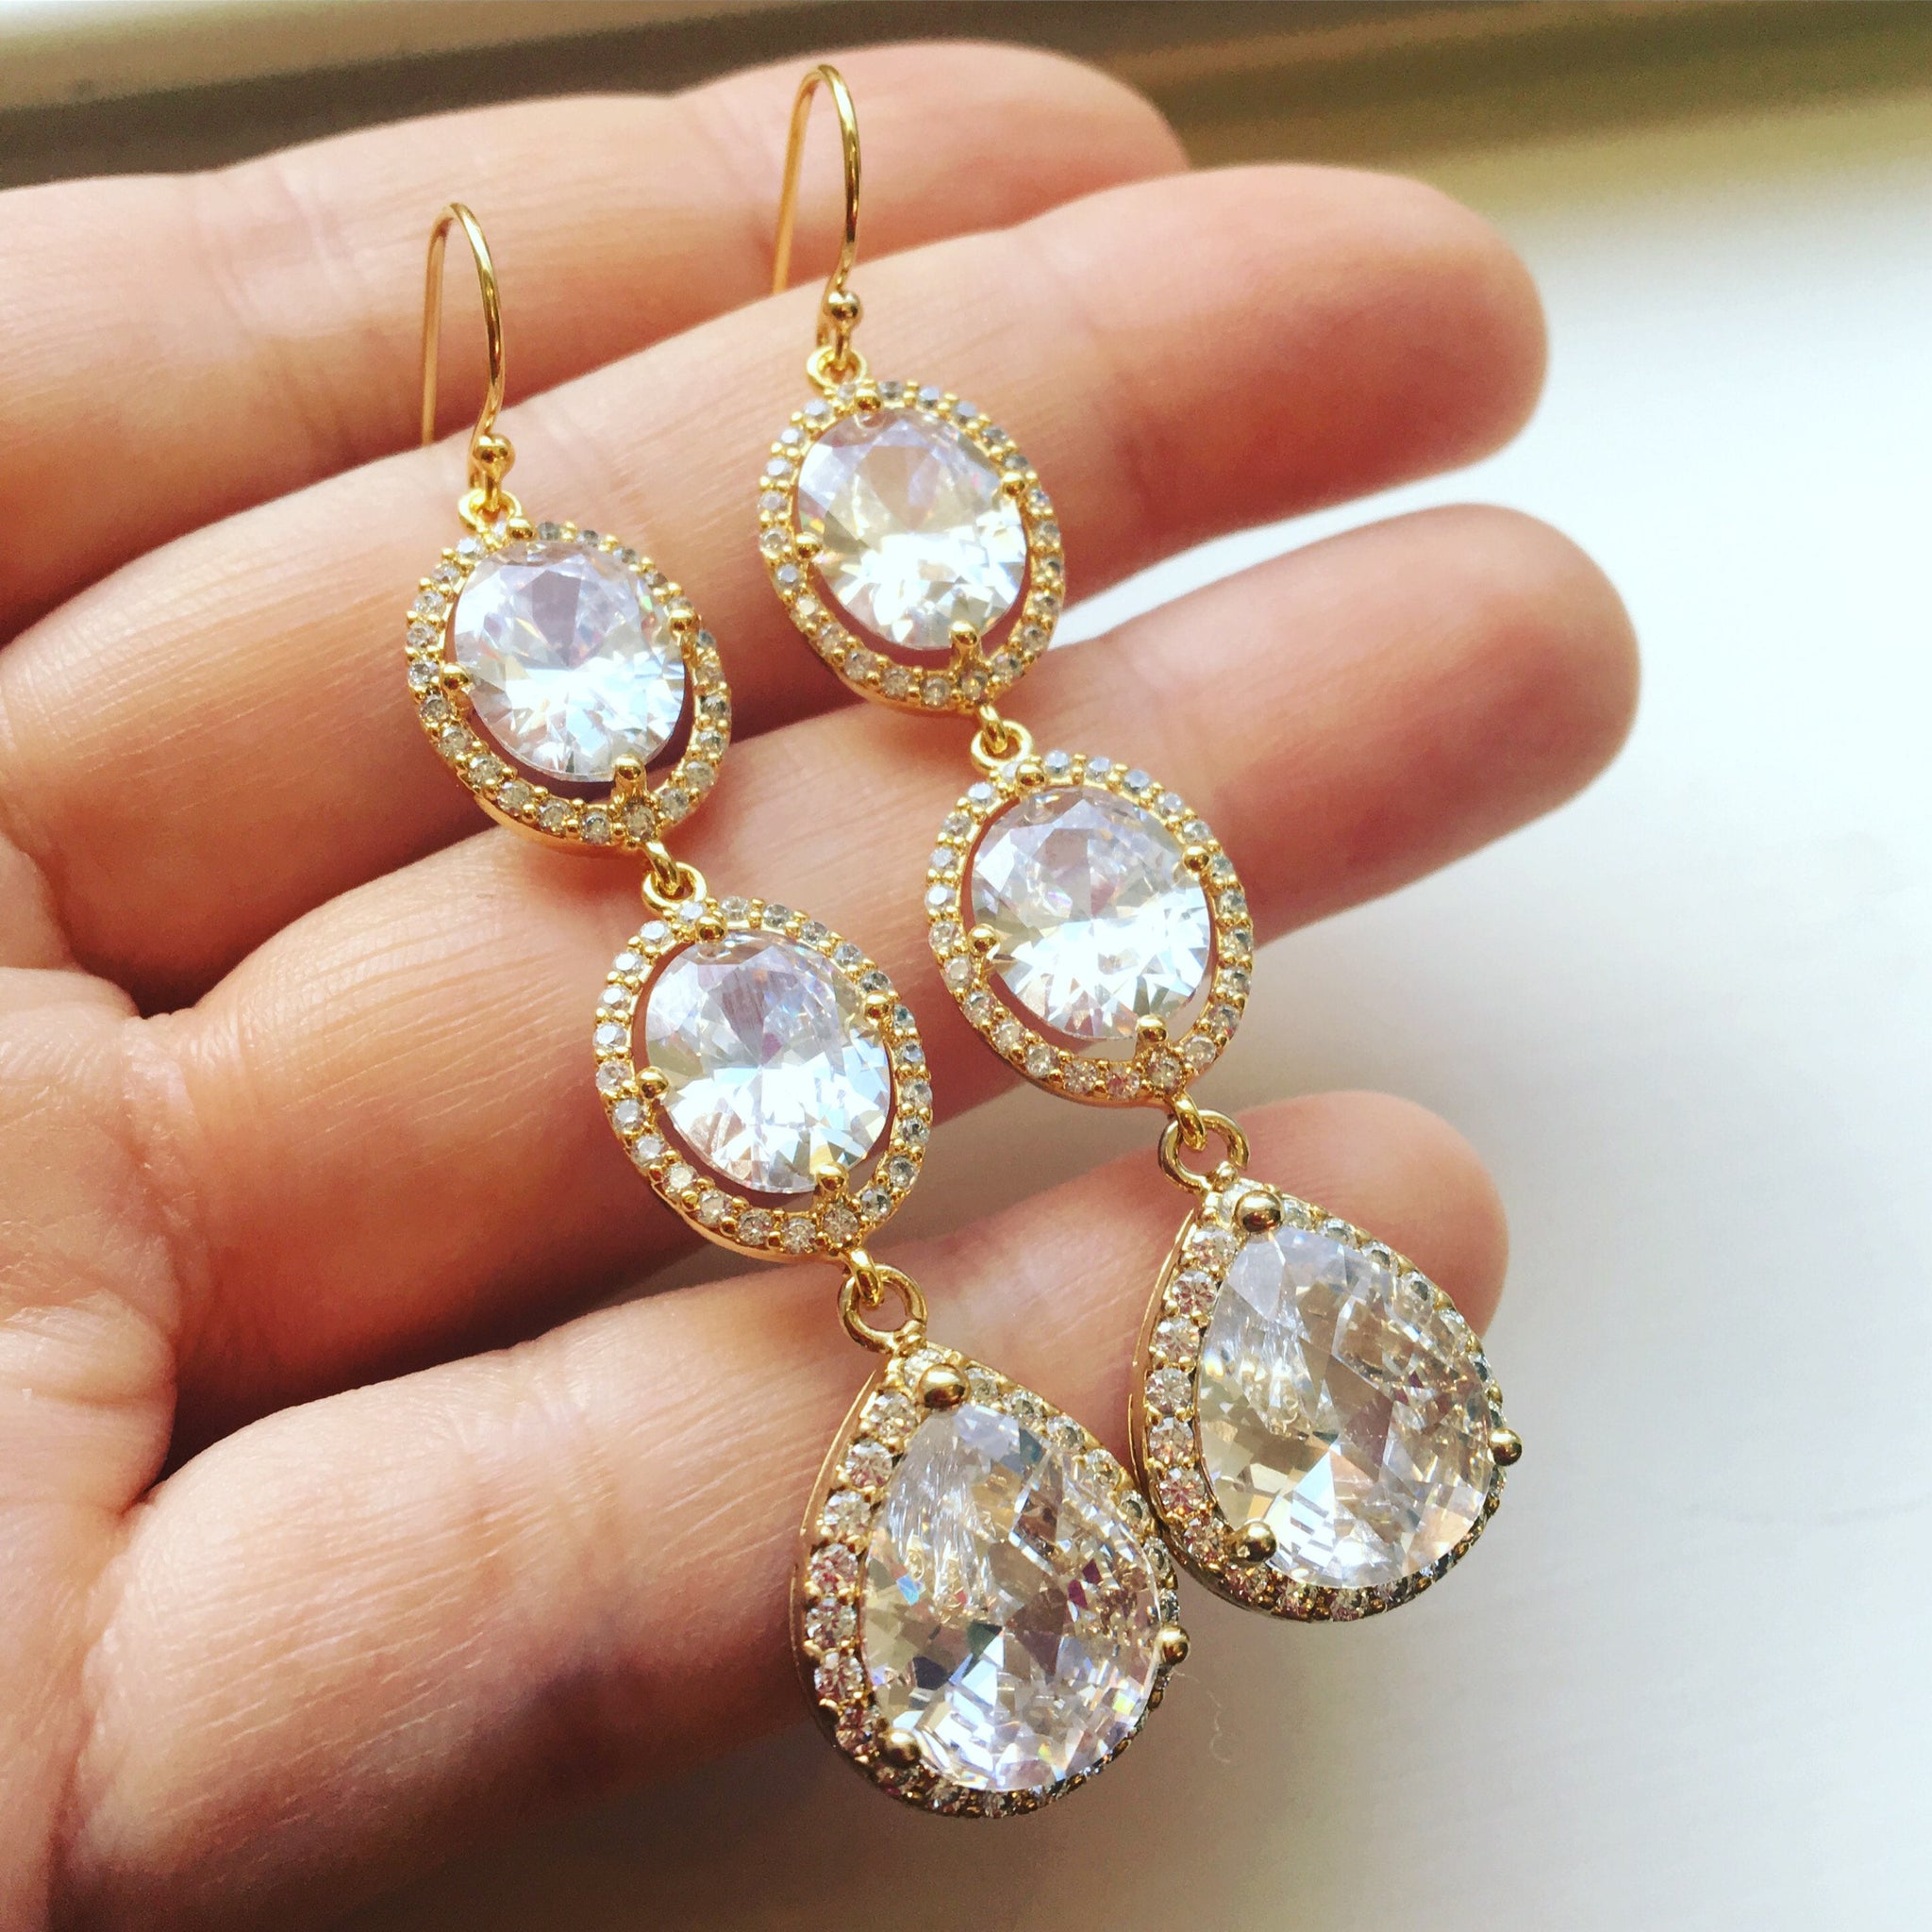 Gold Earrings, Gold Jewelry, Crystal Jewelry, Crystal Earrings, Wedding Jewelry, Bridal Earrings, Bridesmaid Gift Clear Jewelry